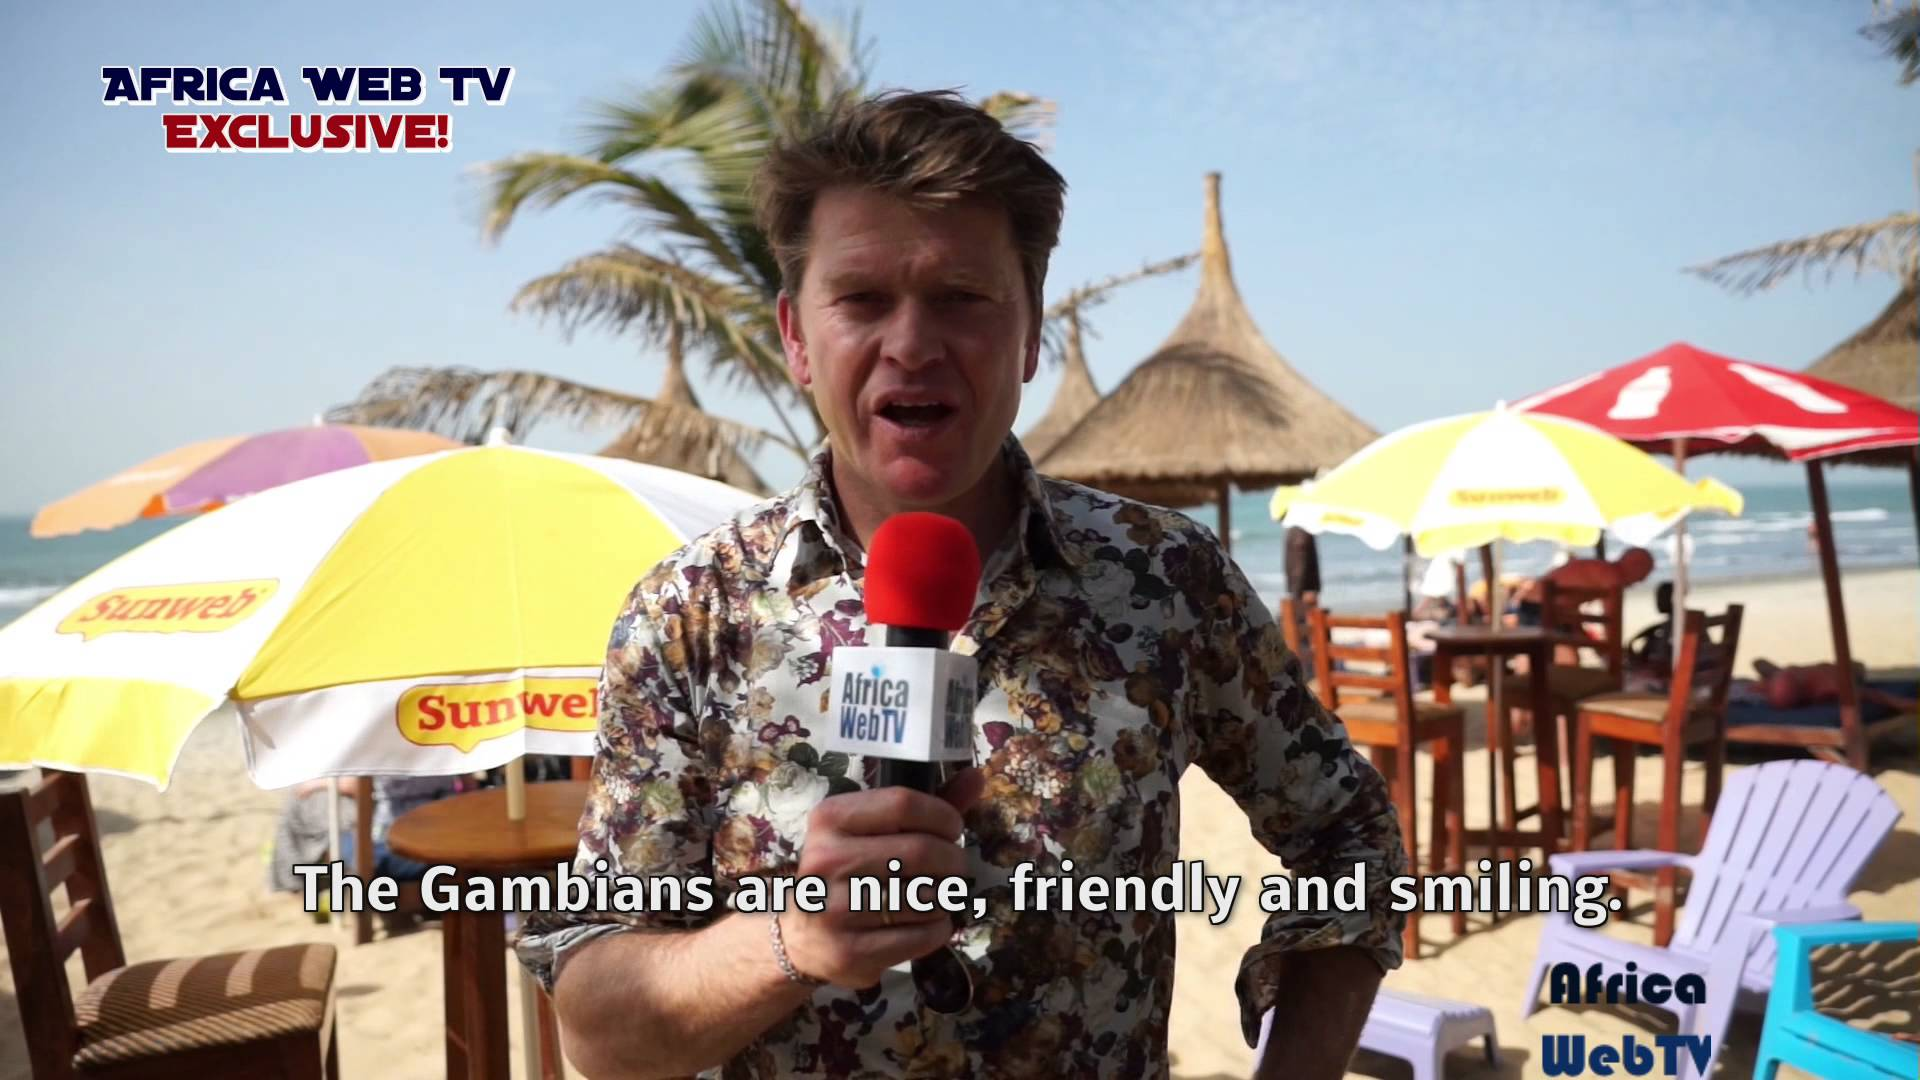 Africa Web TV meets Beau in Gambia